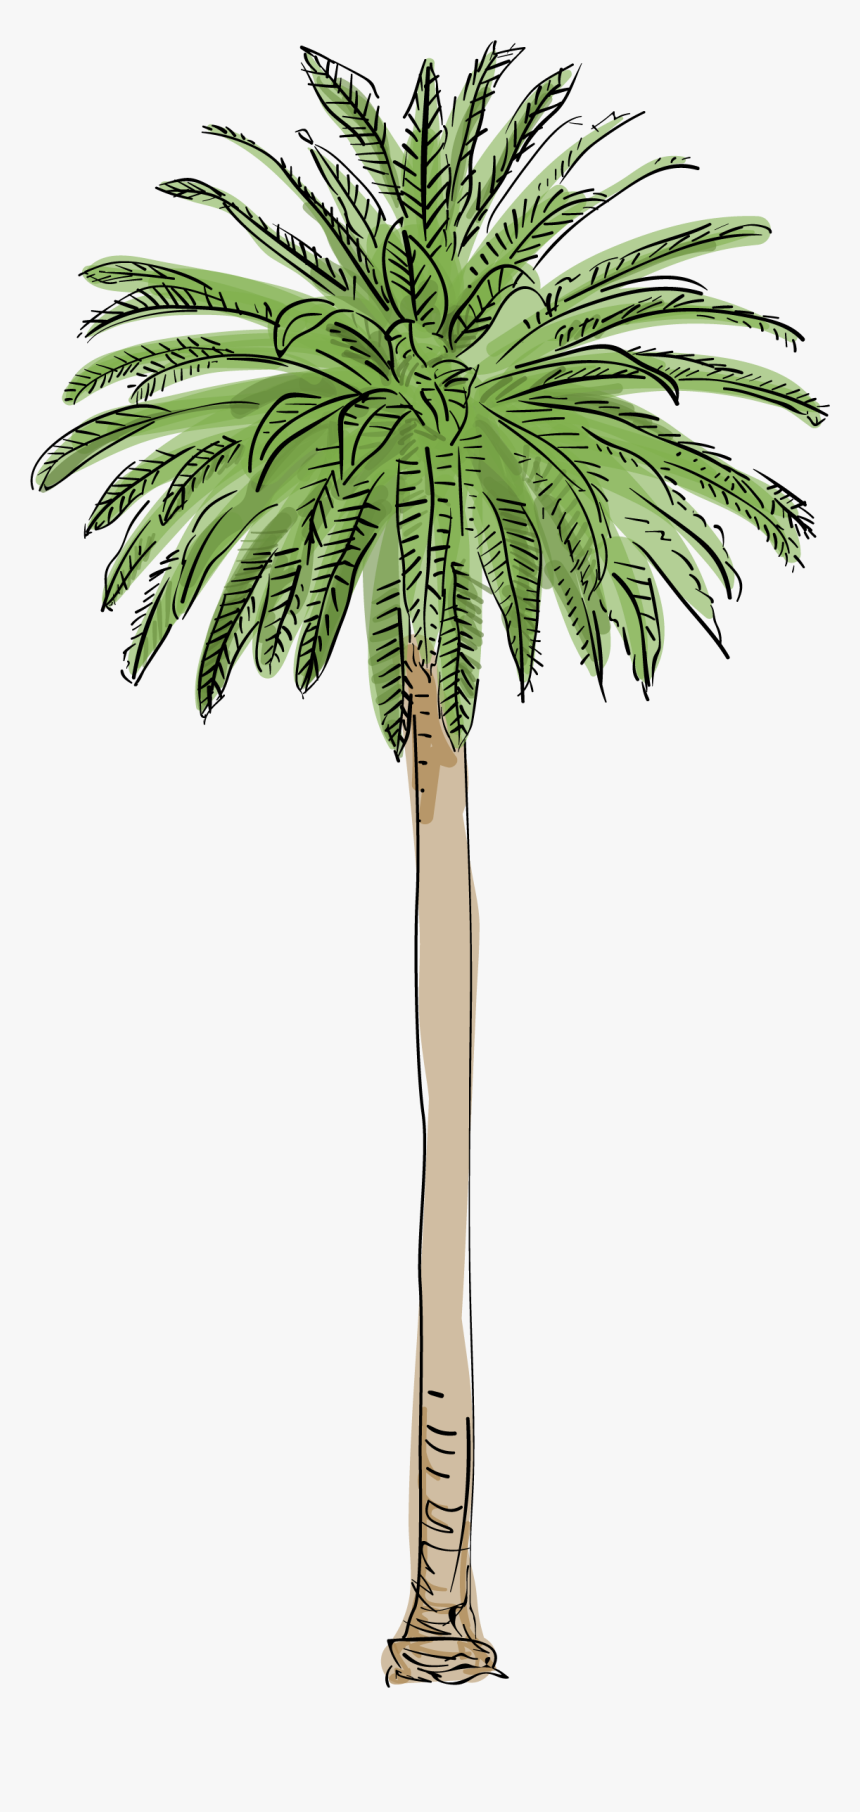 Canary Island Date Palm Png, Transparent Png, Free Download